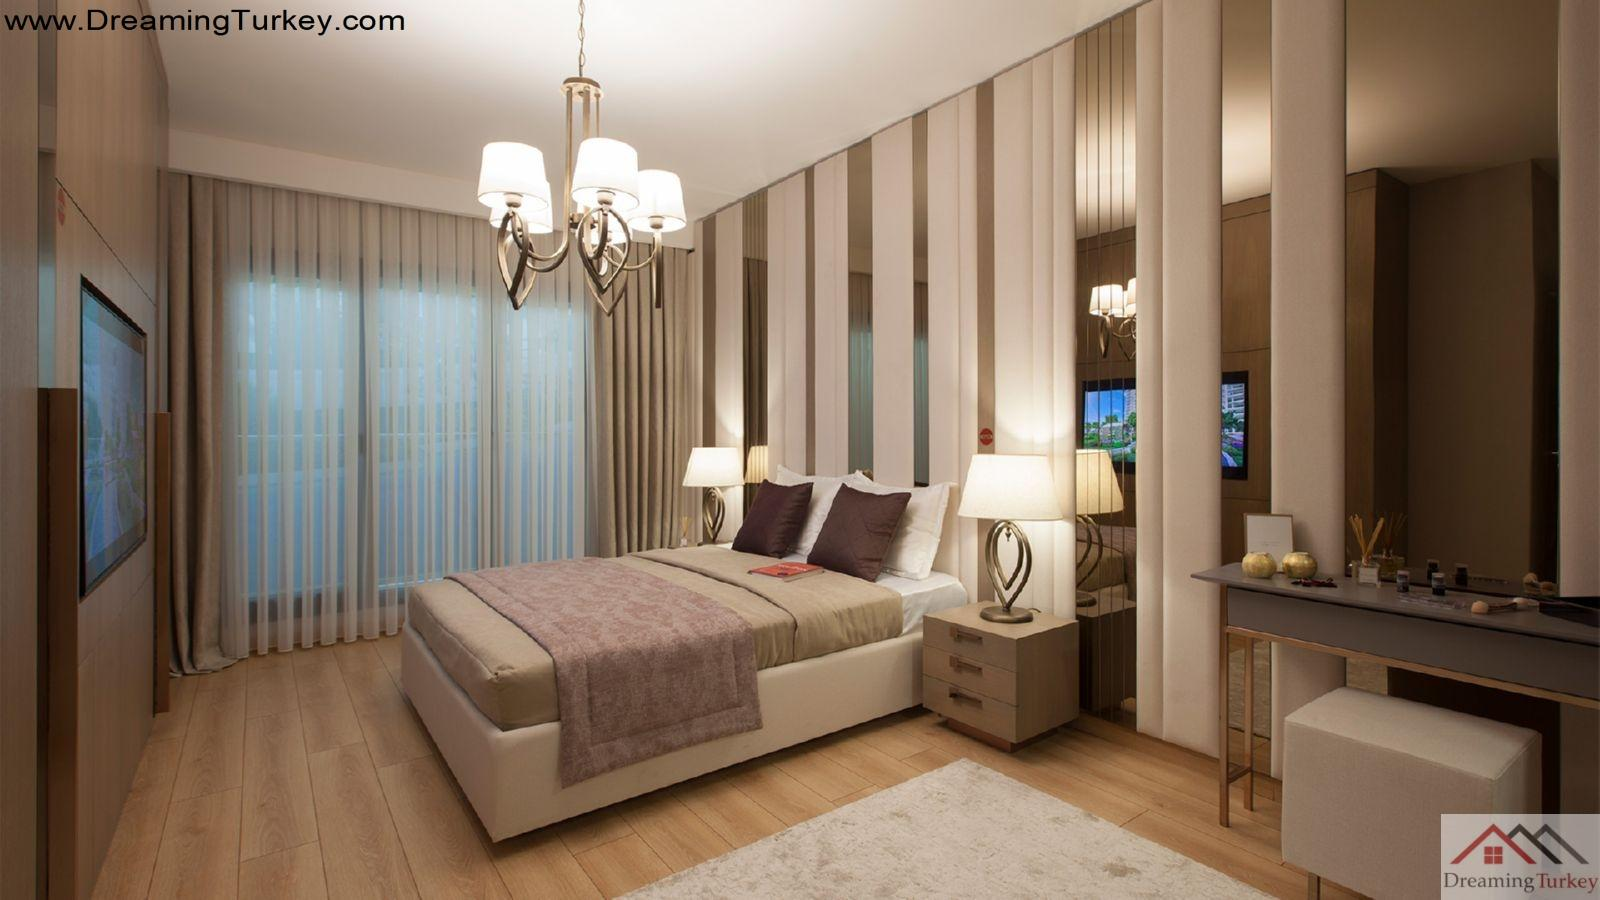 3-Bedroom Apartment inside a Luxury Complex in Istanbul